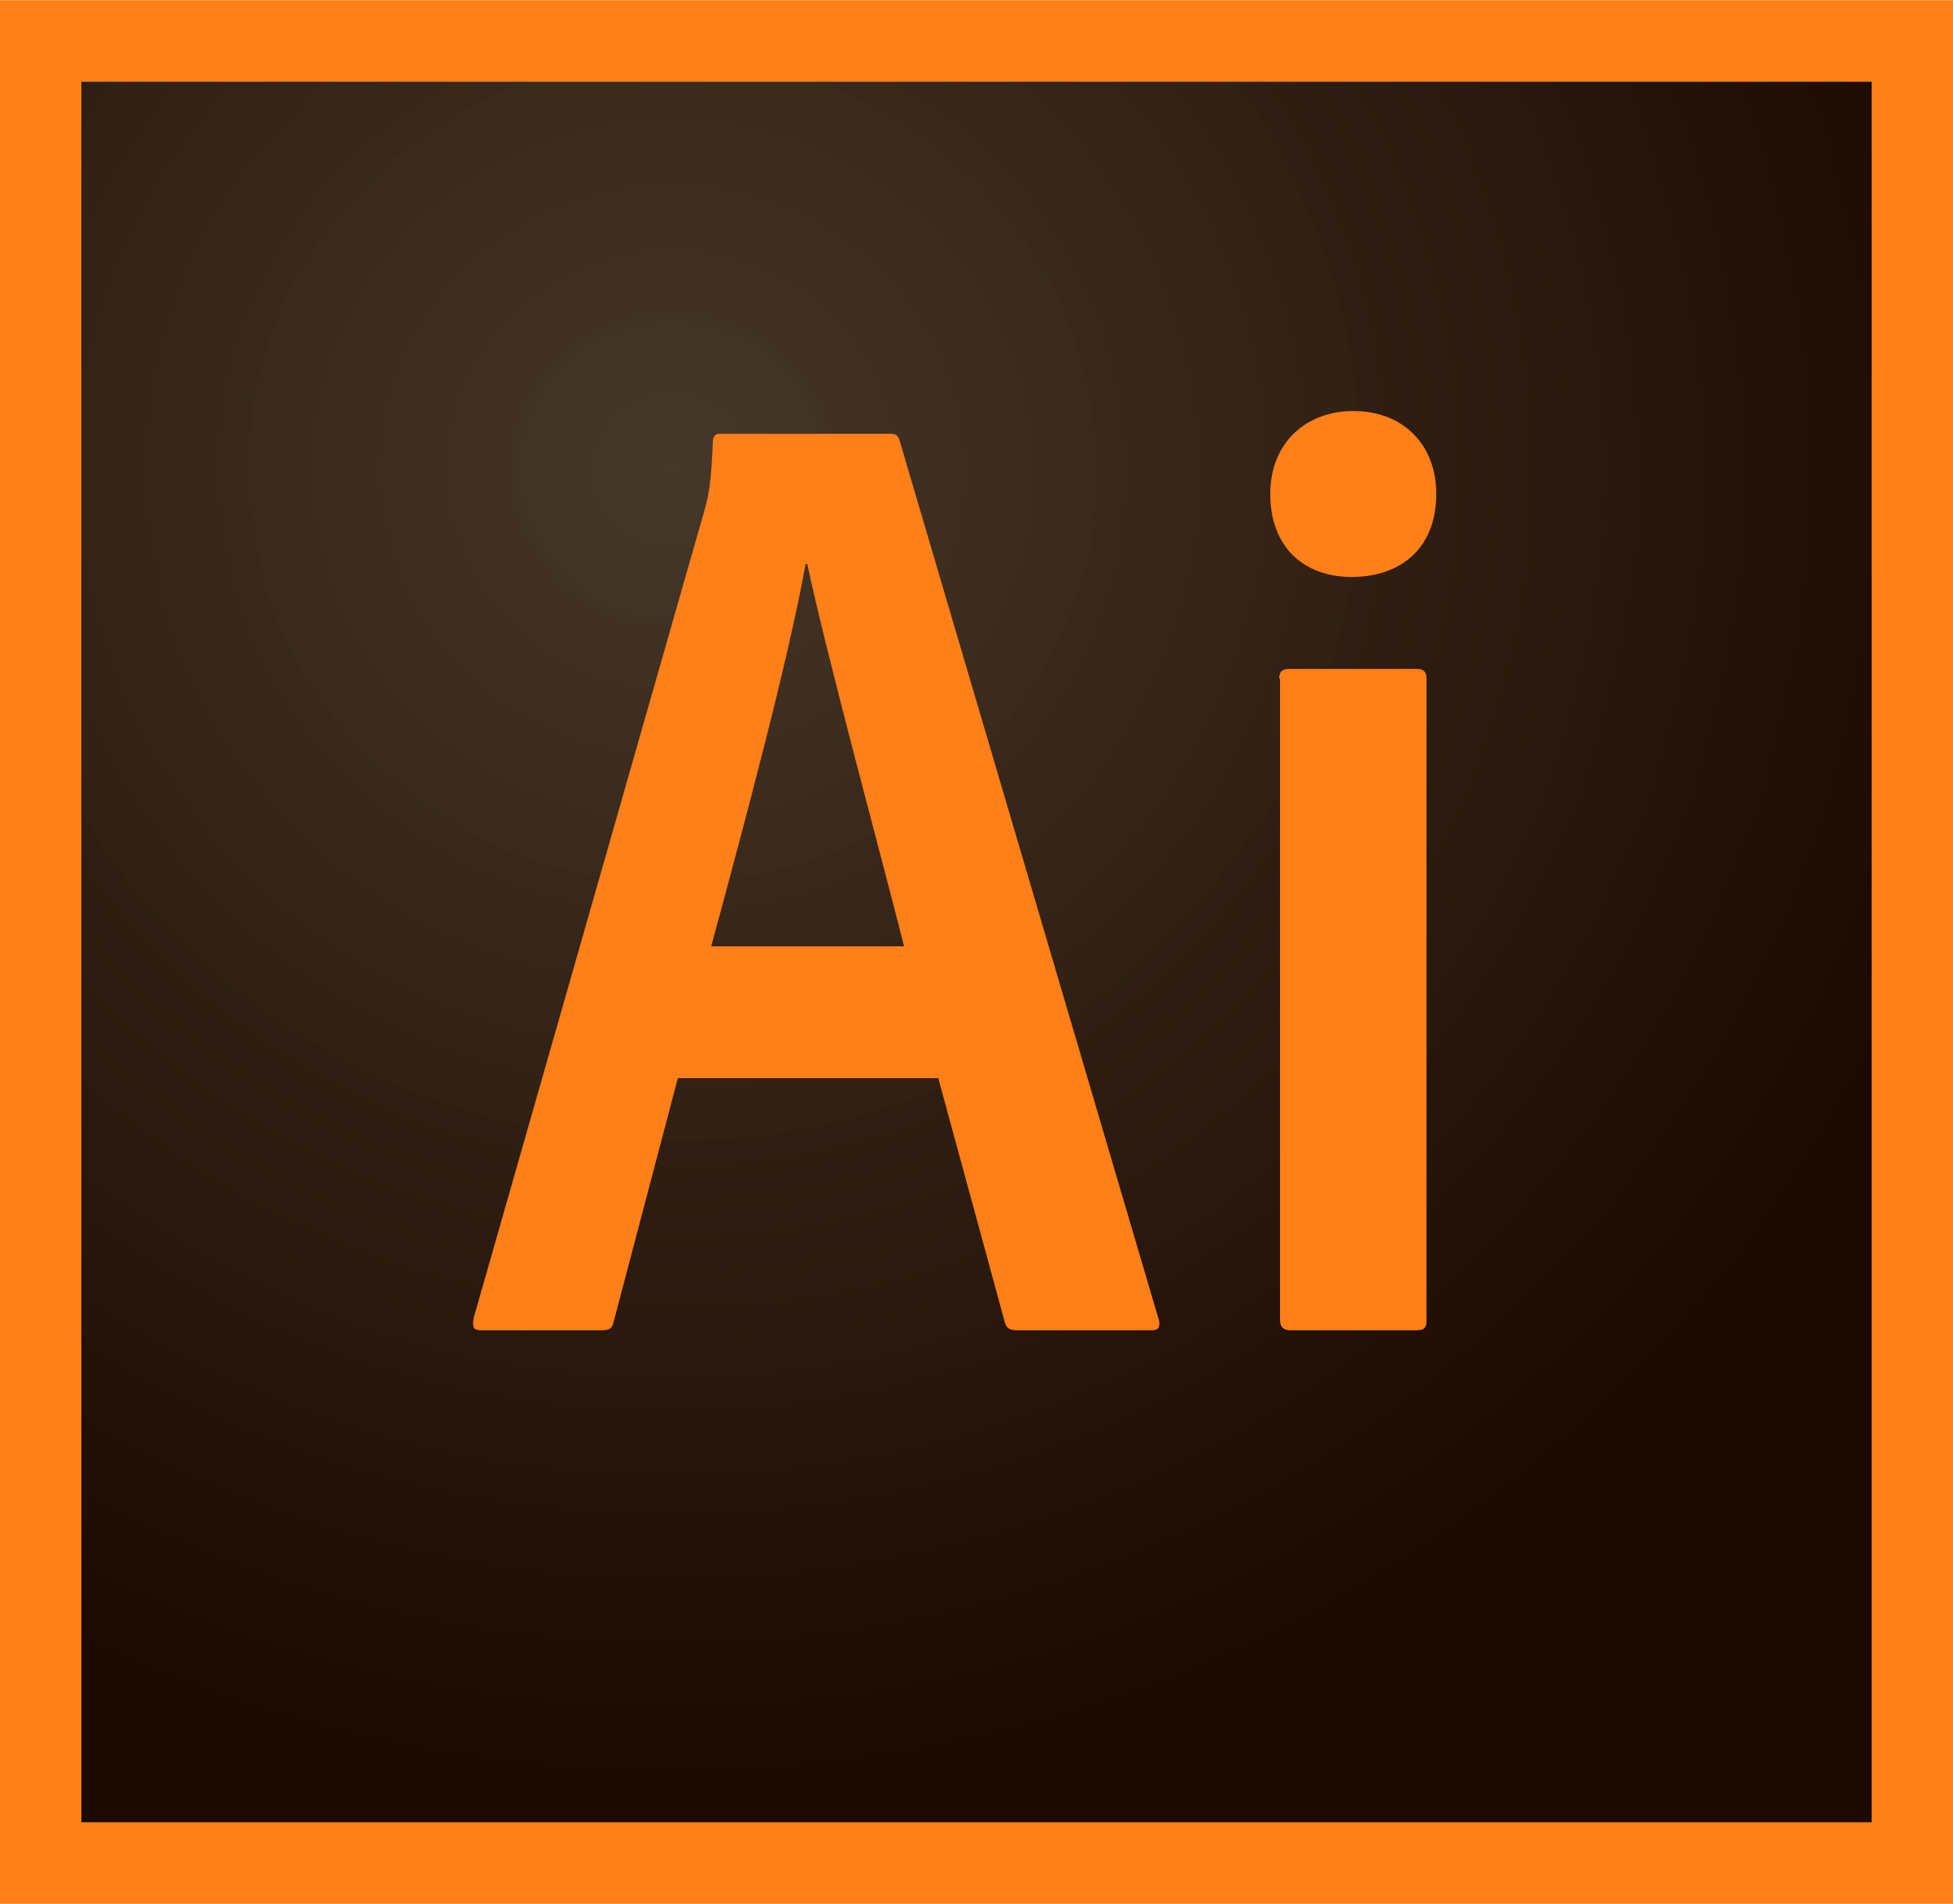 adobe-illustrator-cc-logo-png-transparent.png